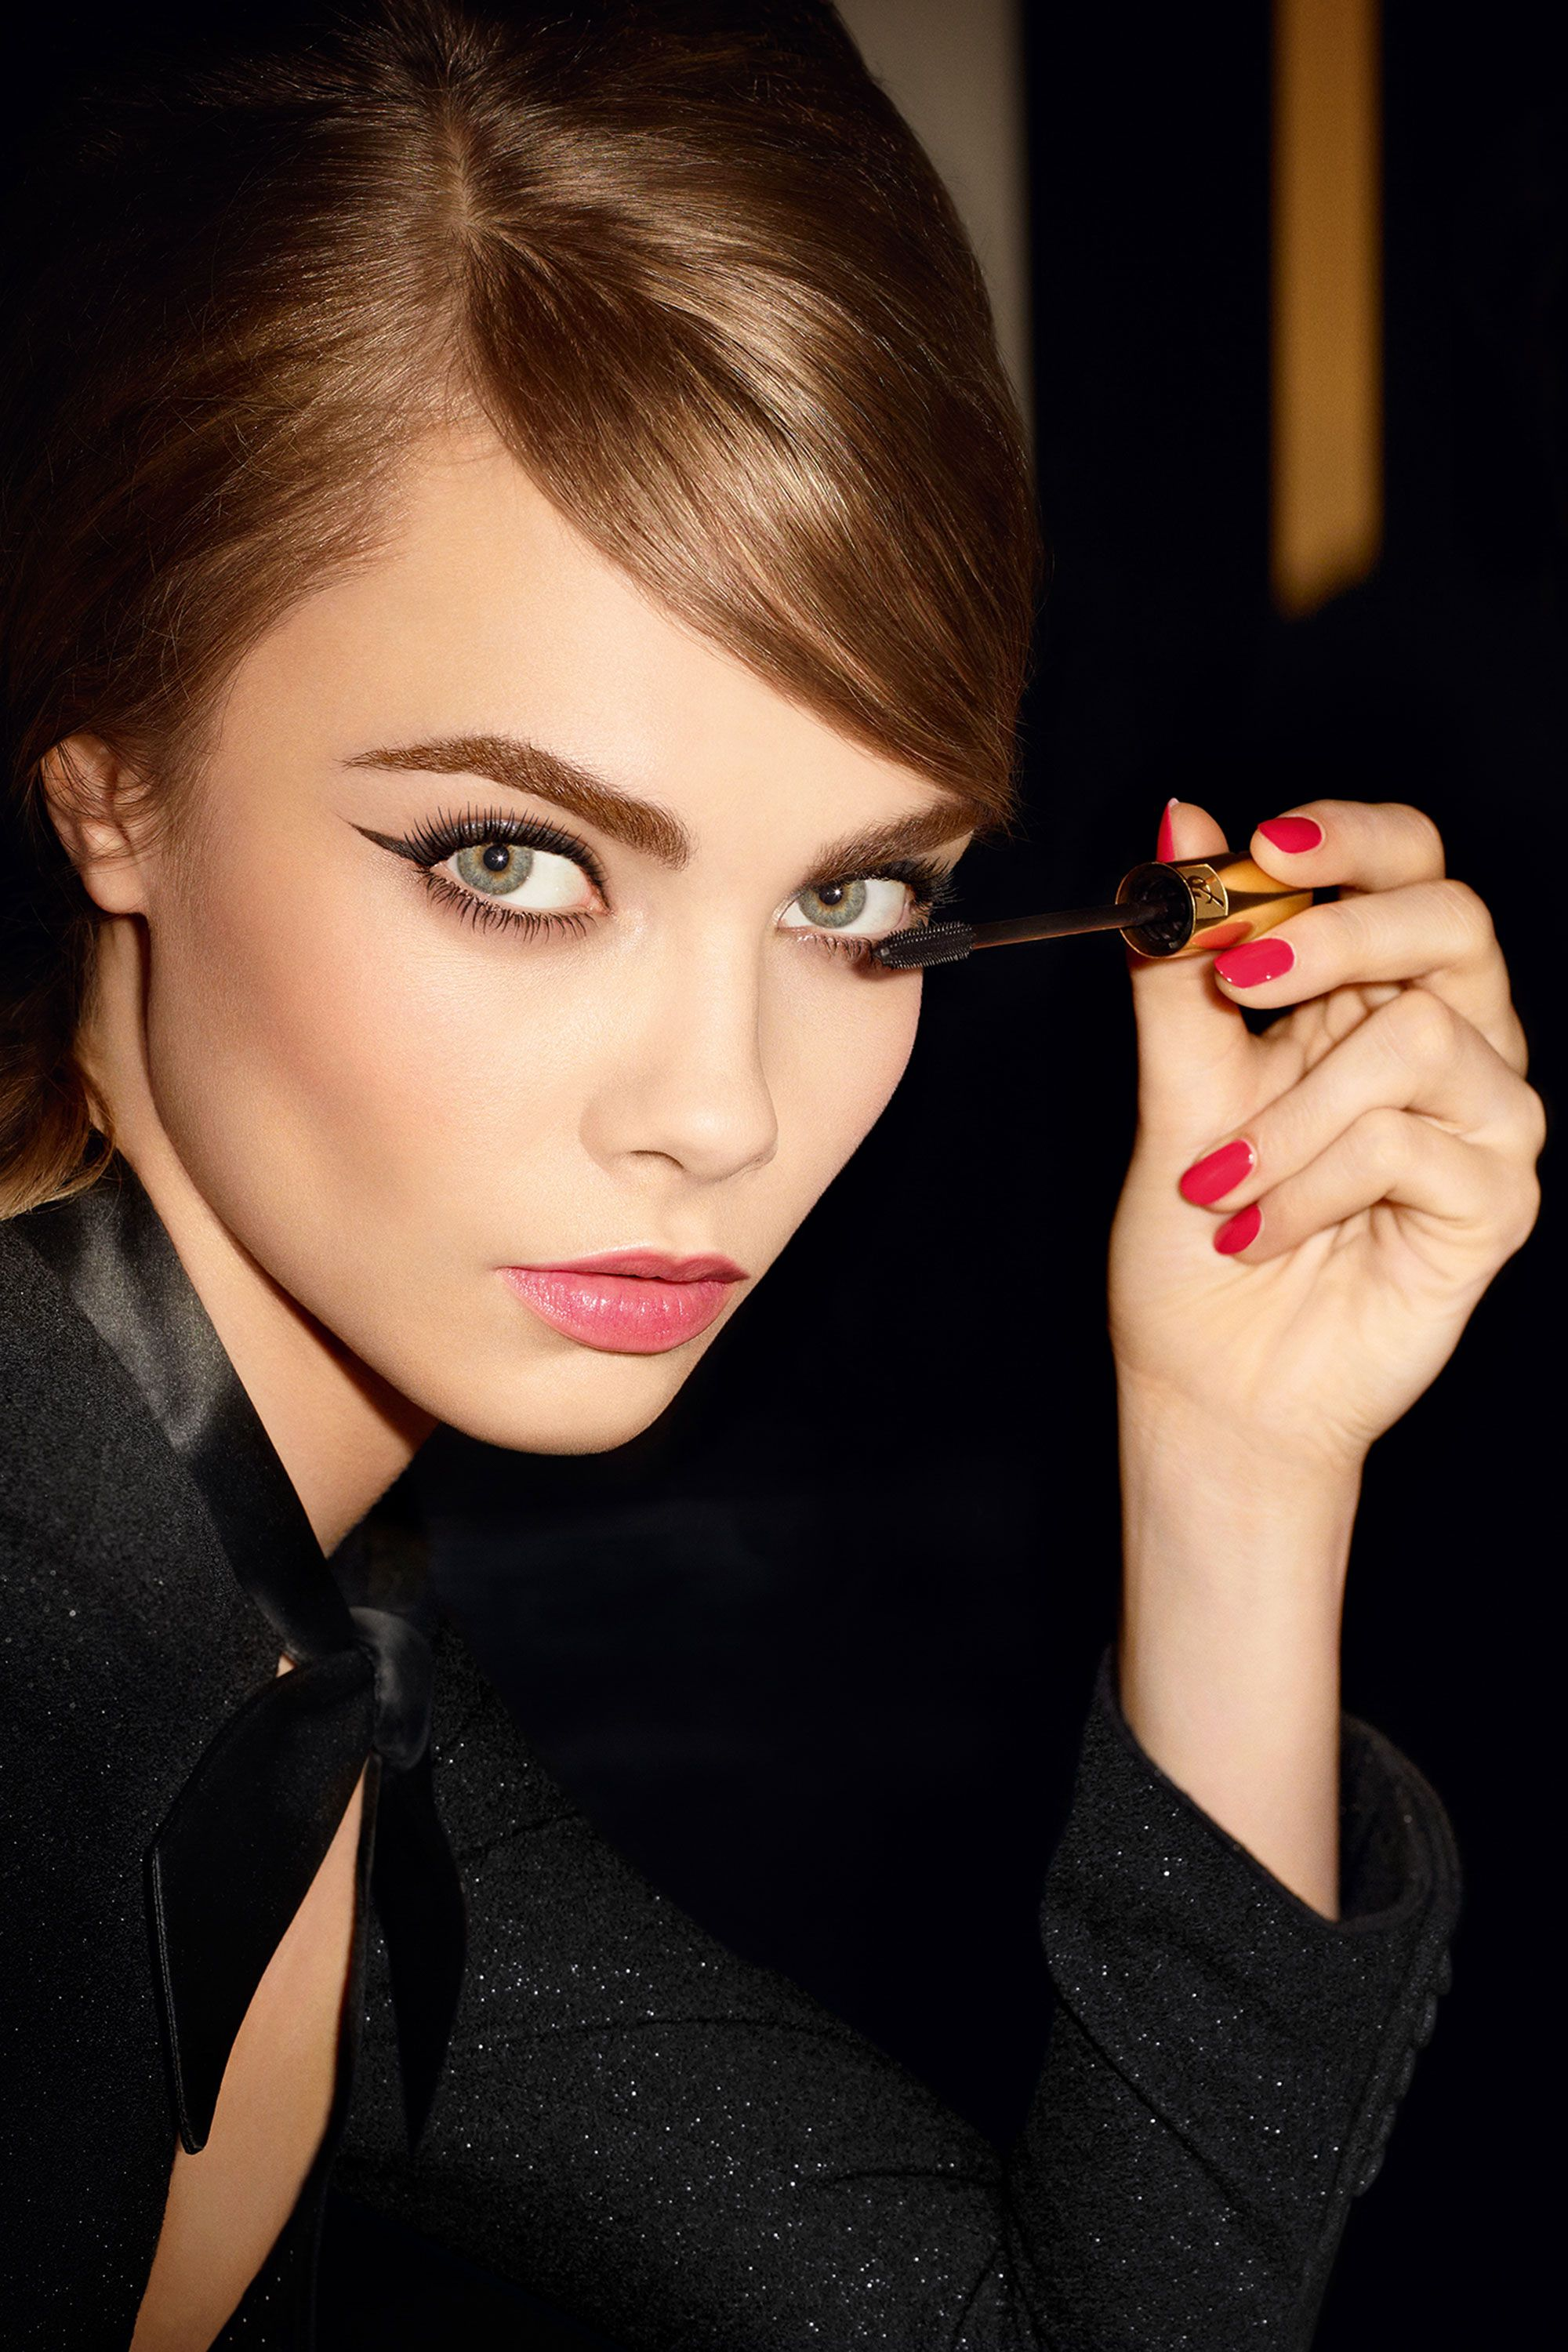 Cara Delevingne Demonstrates the Wrong Way to Apply Vibrating Mascara, Plus More!